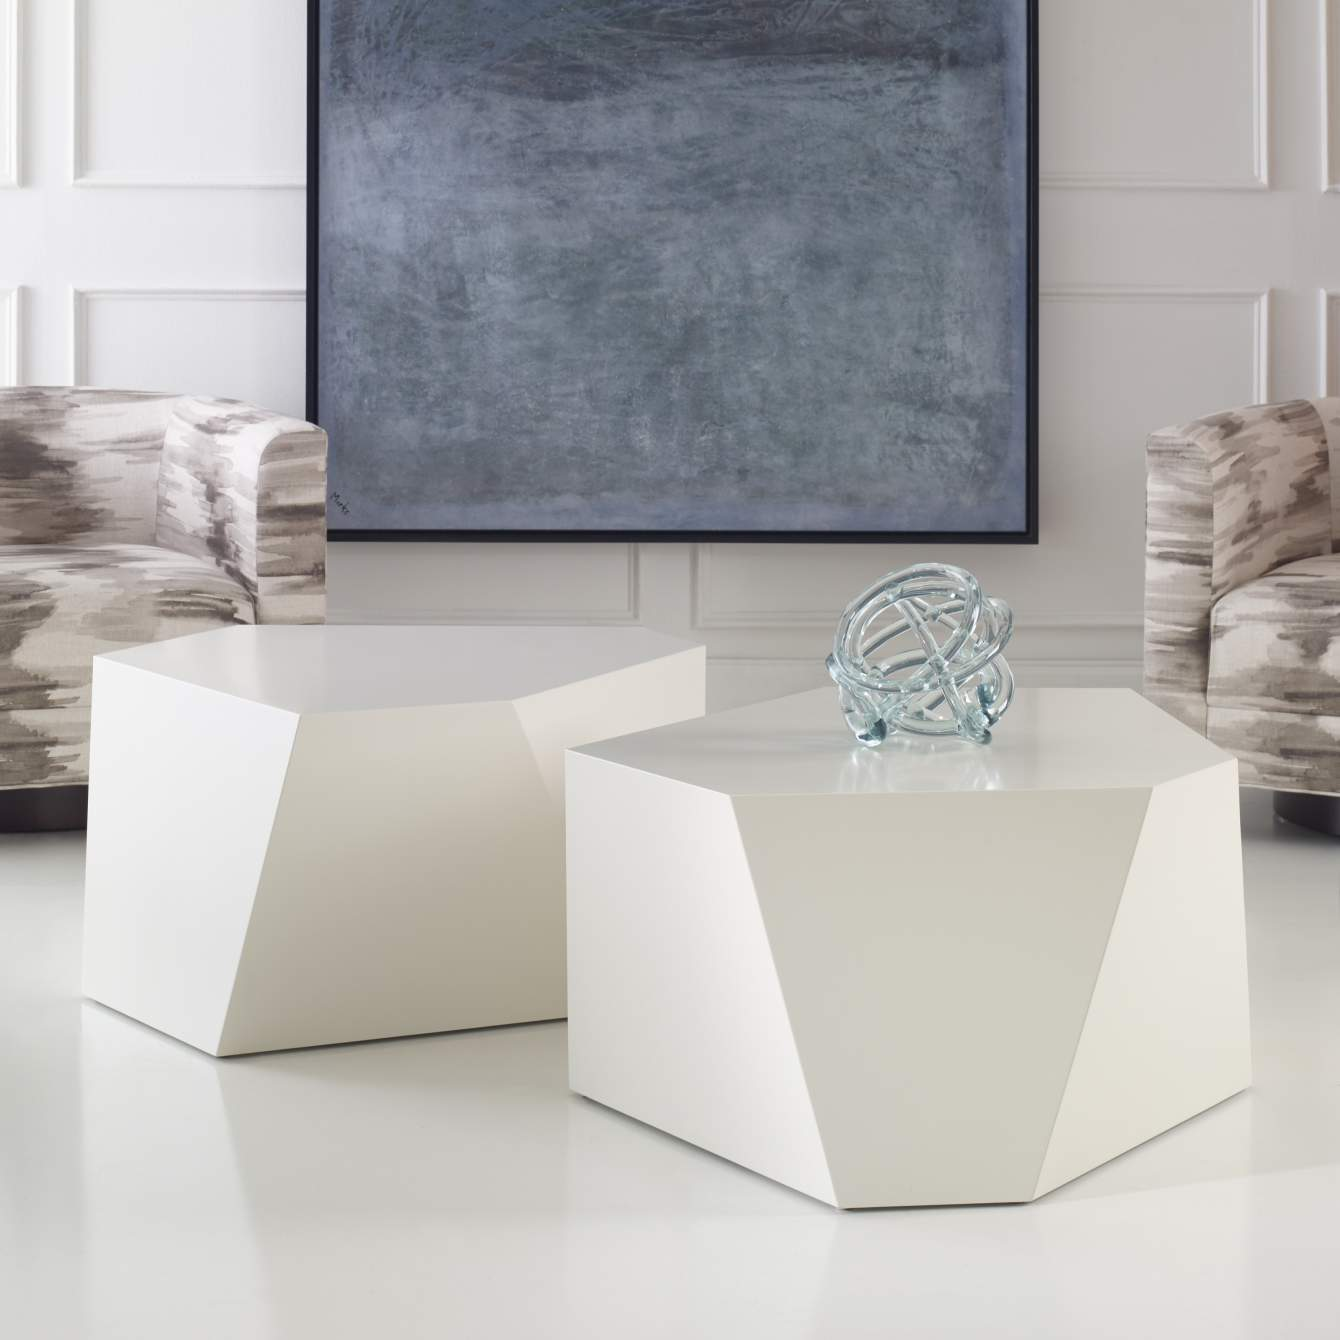 [object Object] Banff Cocktail Tables - White